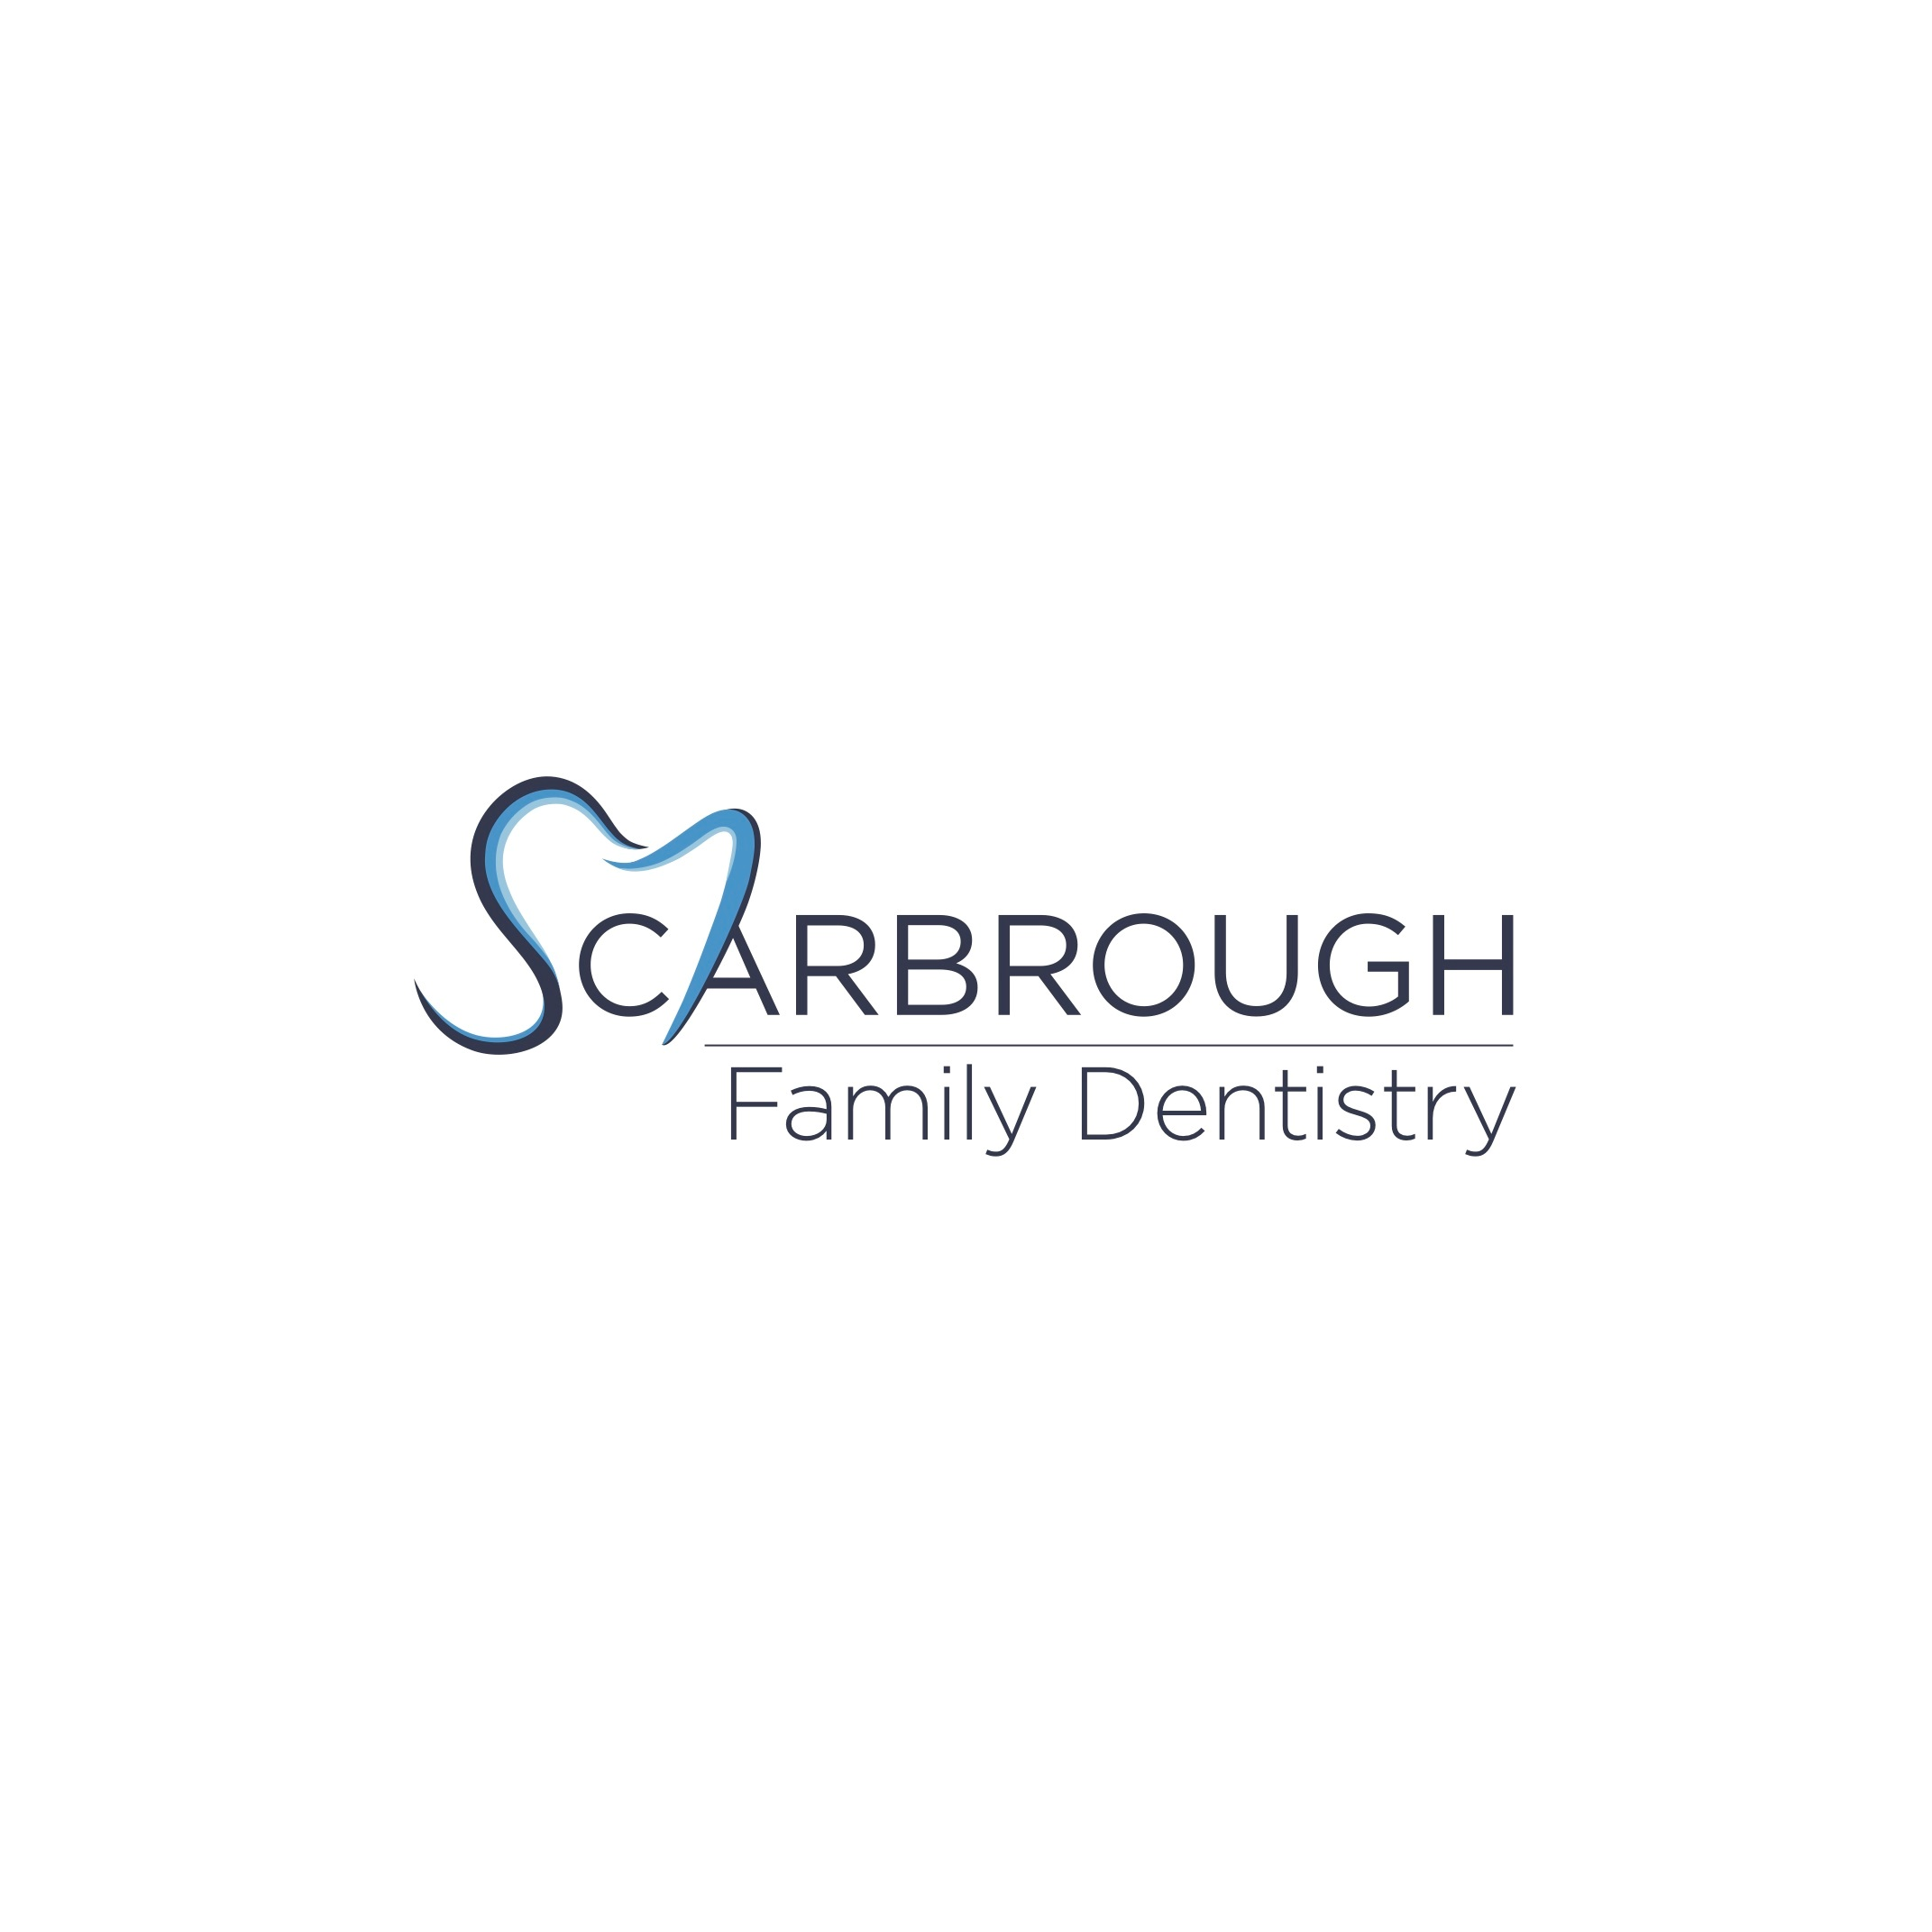 Scarbrough Family Dentistry DDS image 6